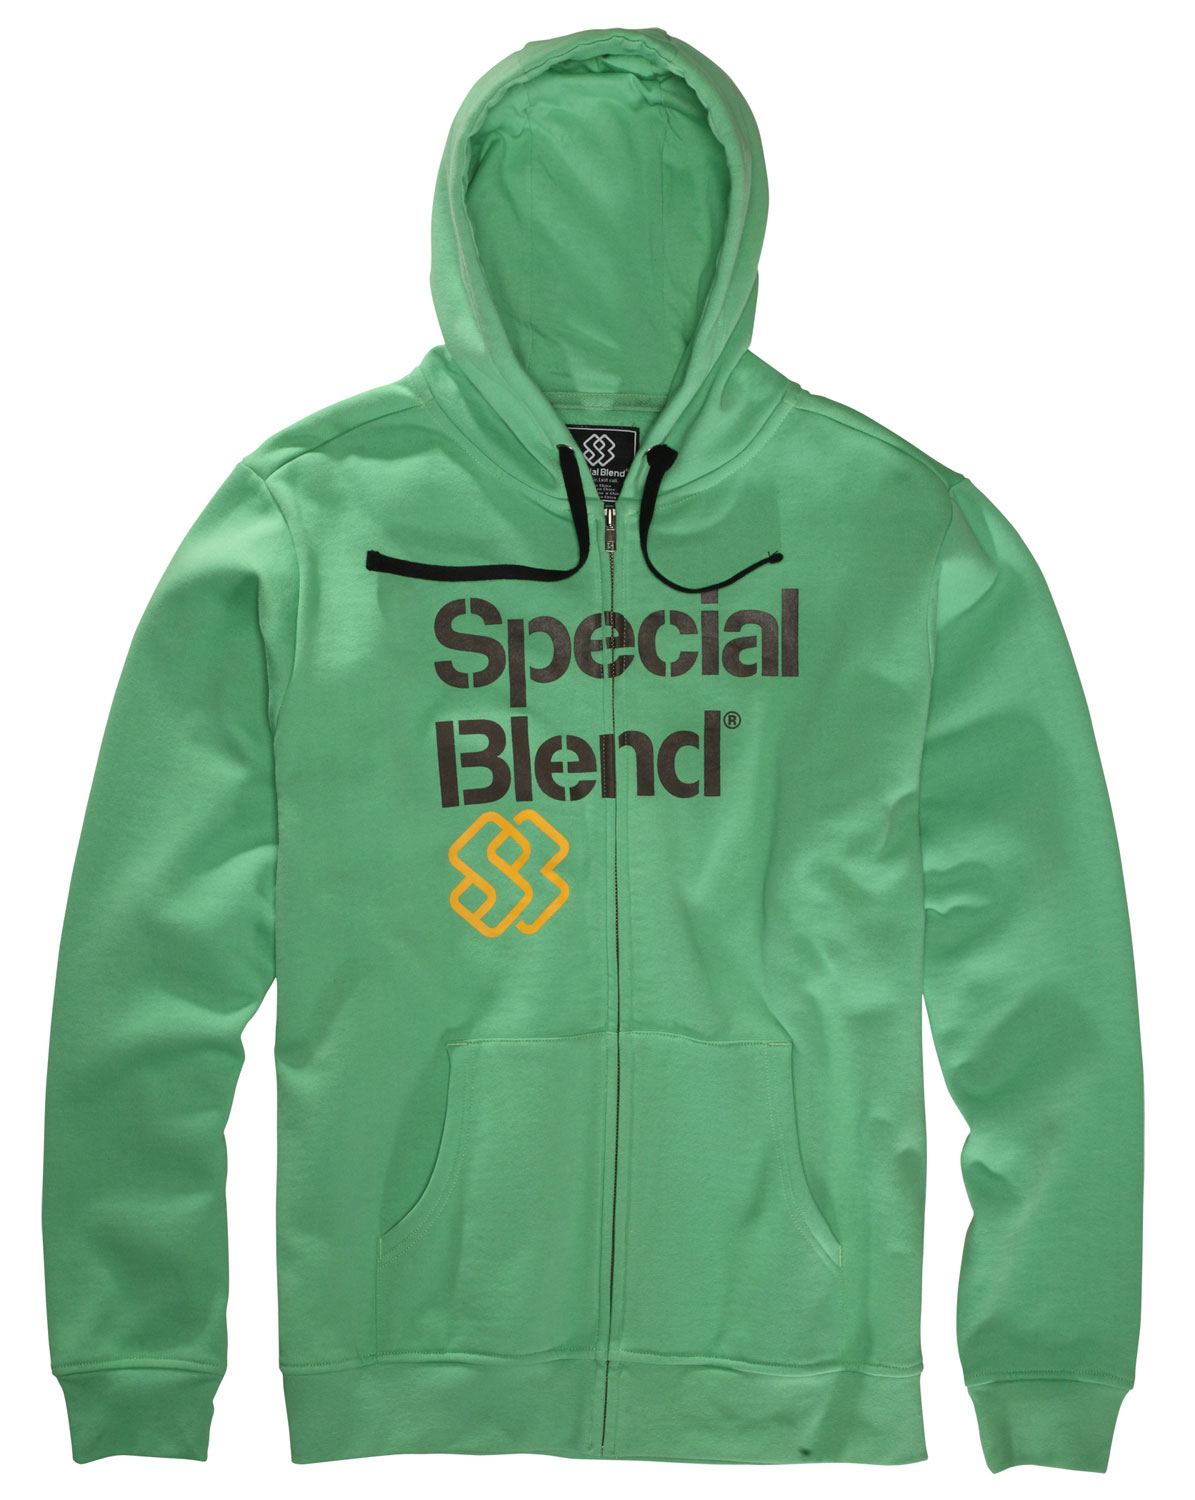 The Special Blend Principal Fullzip Hoodie is made with cotton and polyester featuring a fleece lined hood made with 100% cotton. So comfortable to the touch, wear it all winter long and layer it with your favorite shirt. With its zip up feature, be sure to put it on and off with ease making this the practical hoodie to own. Keep yourself warm and bundle up in the Special Blend Principal Fullzip Hoodie this season.Key Features of the Special Blend Principal Fullzip Hoodie: Freedom fit 80% cotton 20% polyester, 300 gms. 100% cotton jersey hood lining. - $34.95